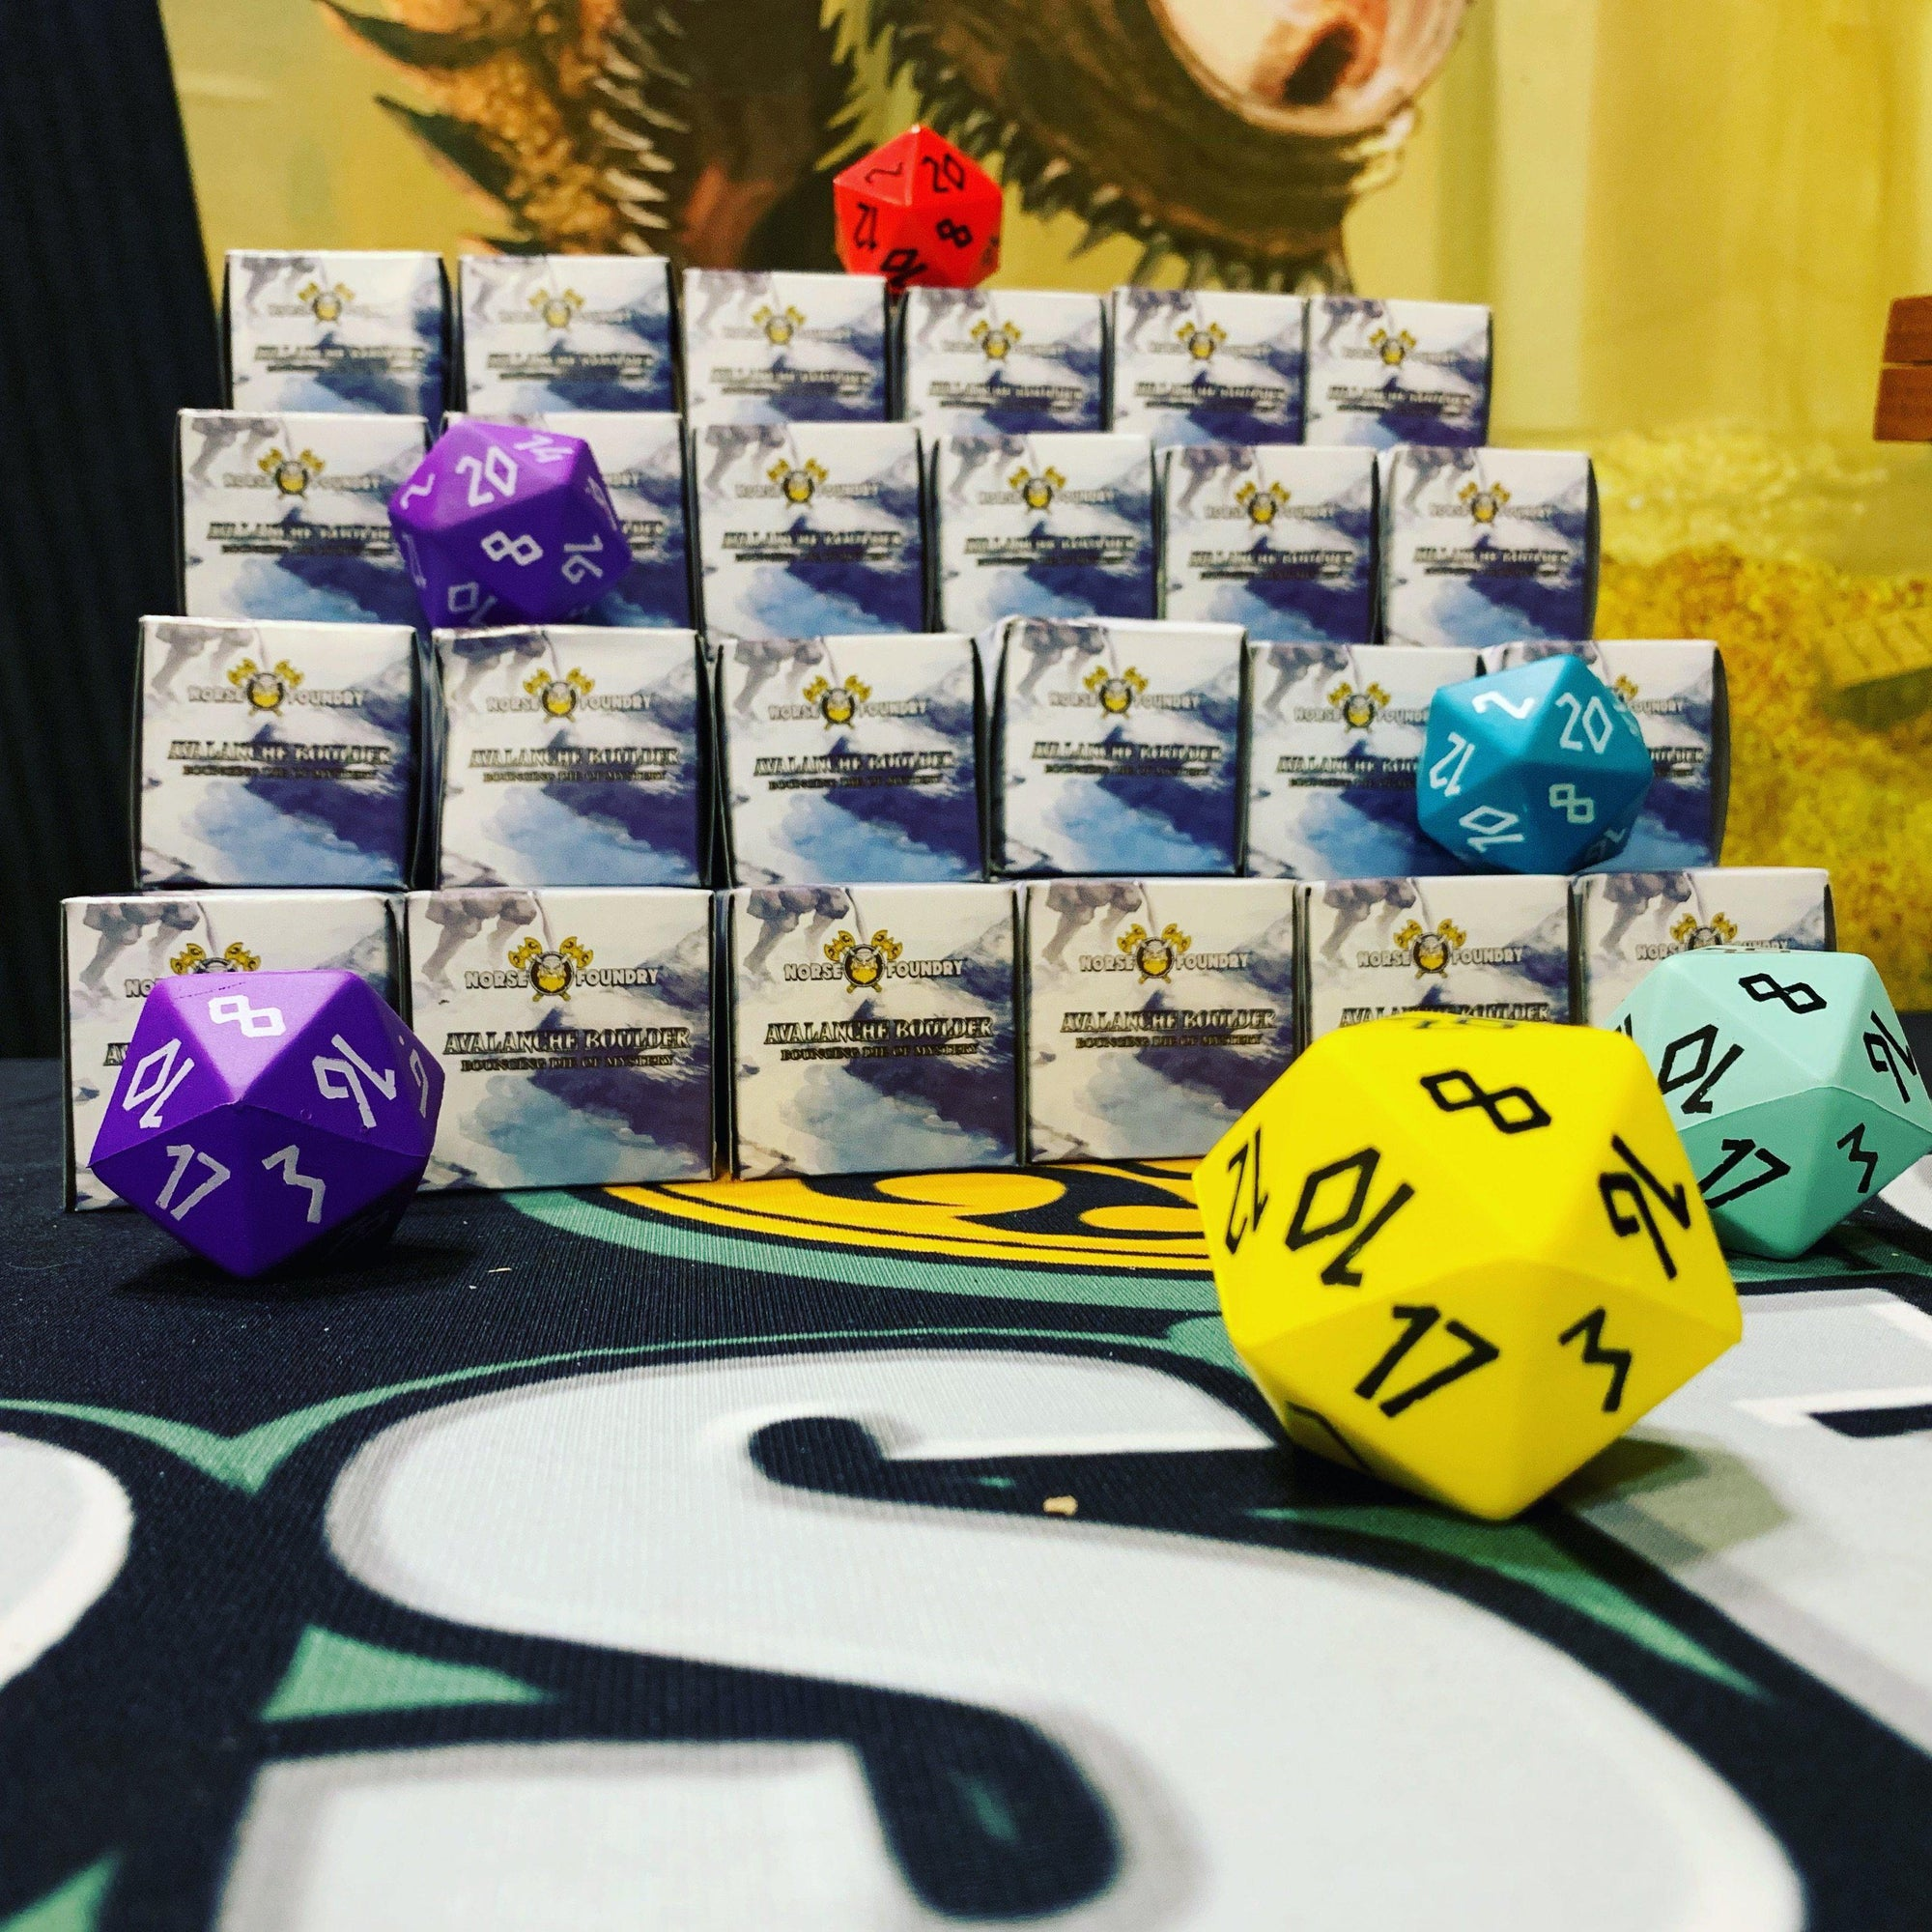 Avalanche Boulder - Mystery Box Boulders 45mm Foam Dice by Norse Foundry